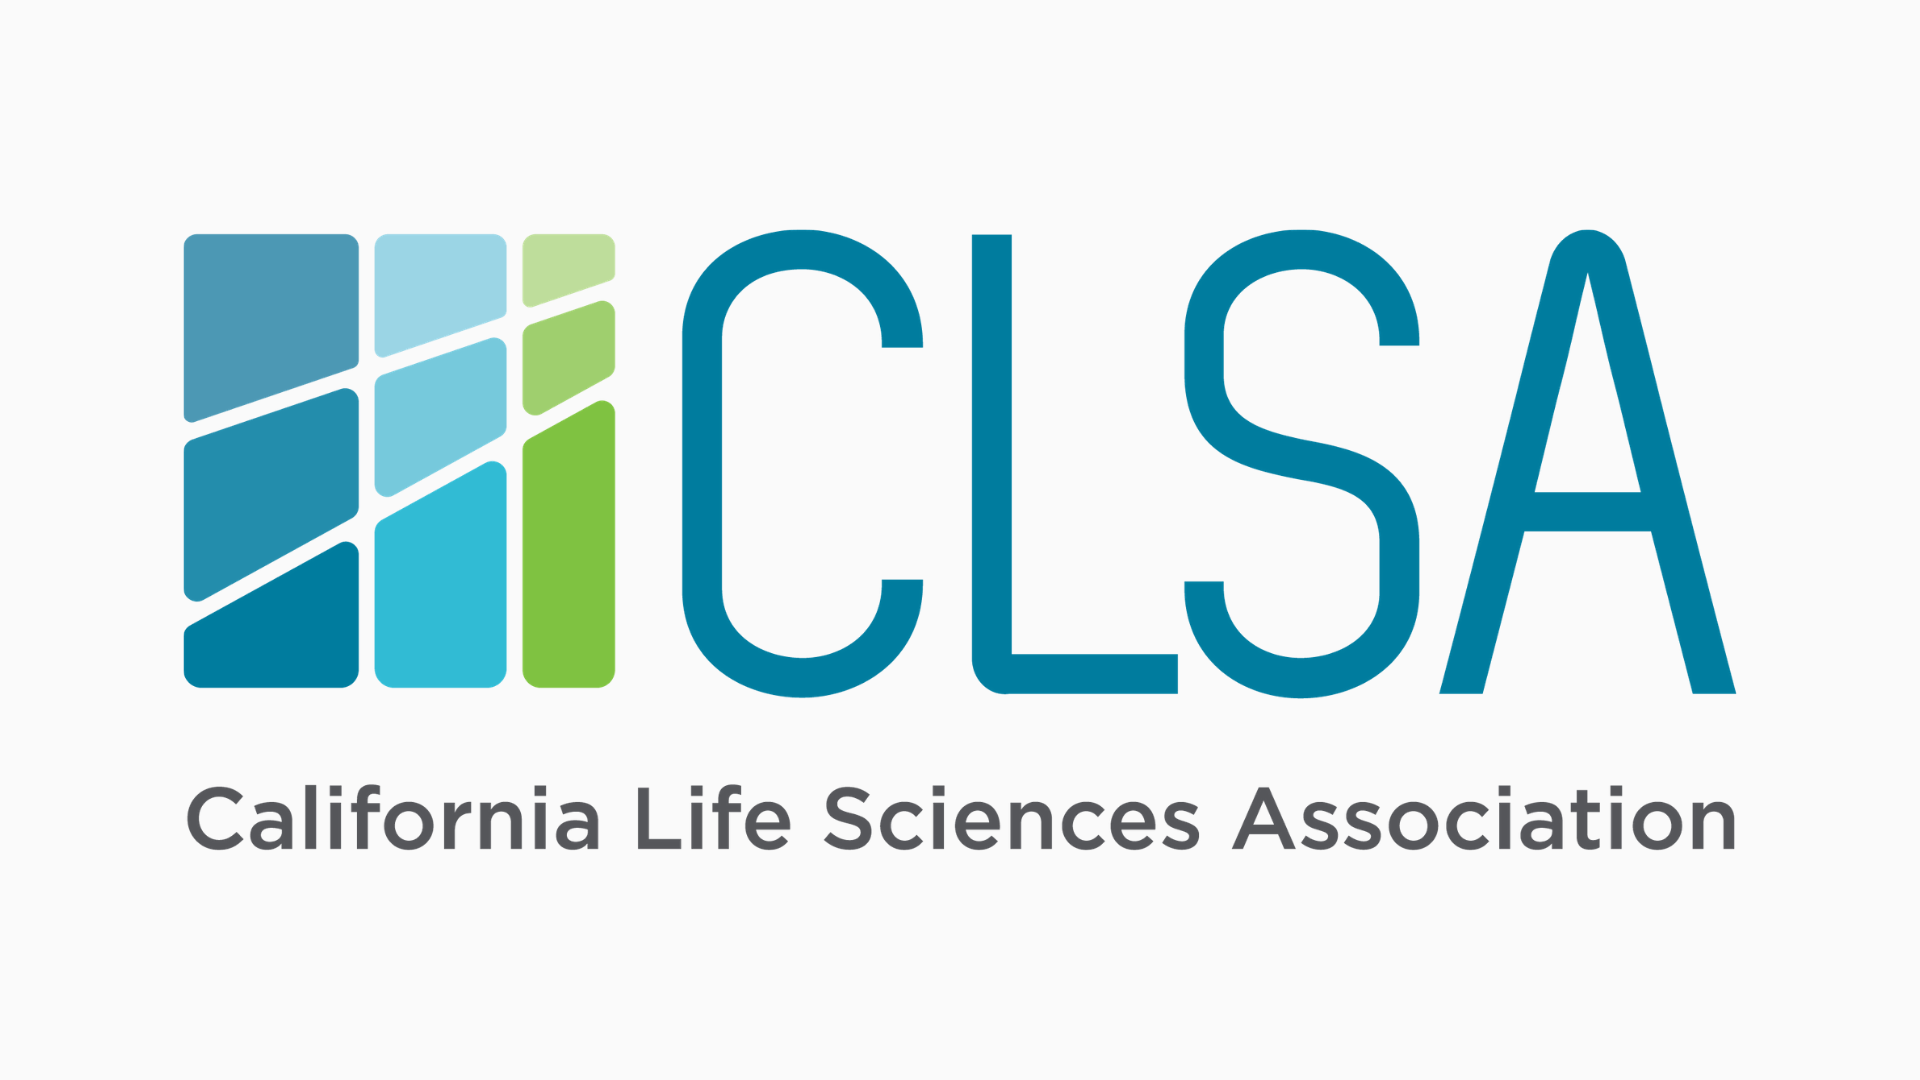 California Life Sciences Association (CLSA): Advancing California's Life Sciences Innovation Ecosystem